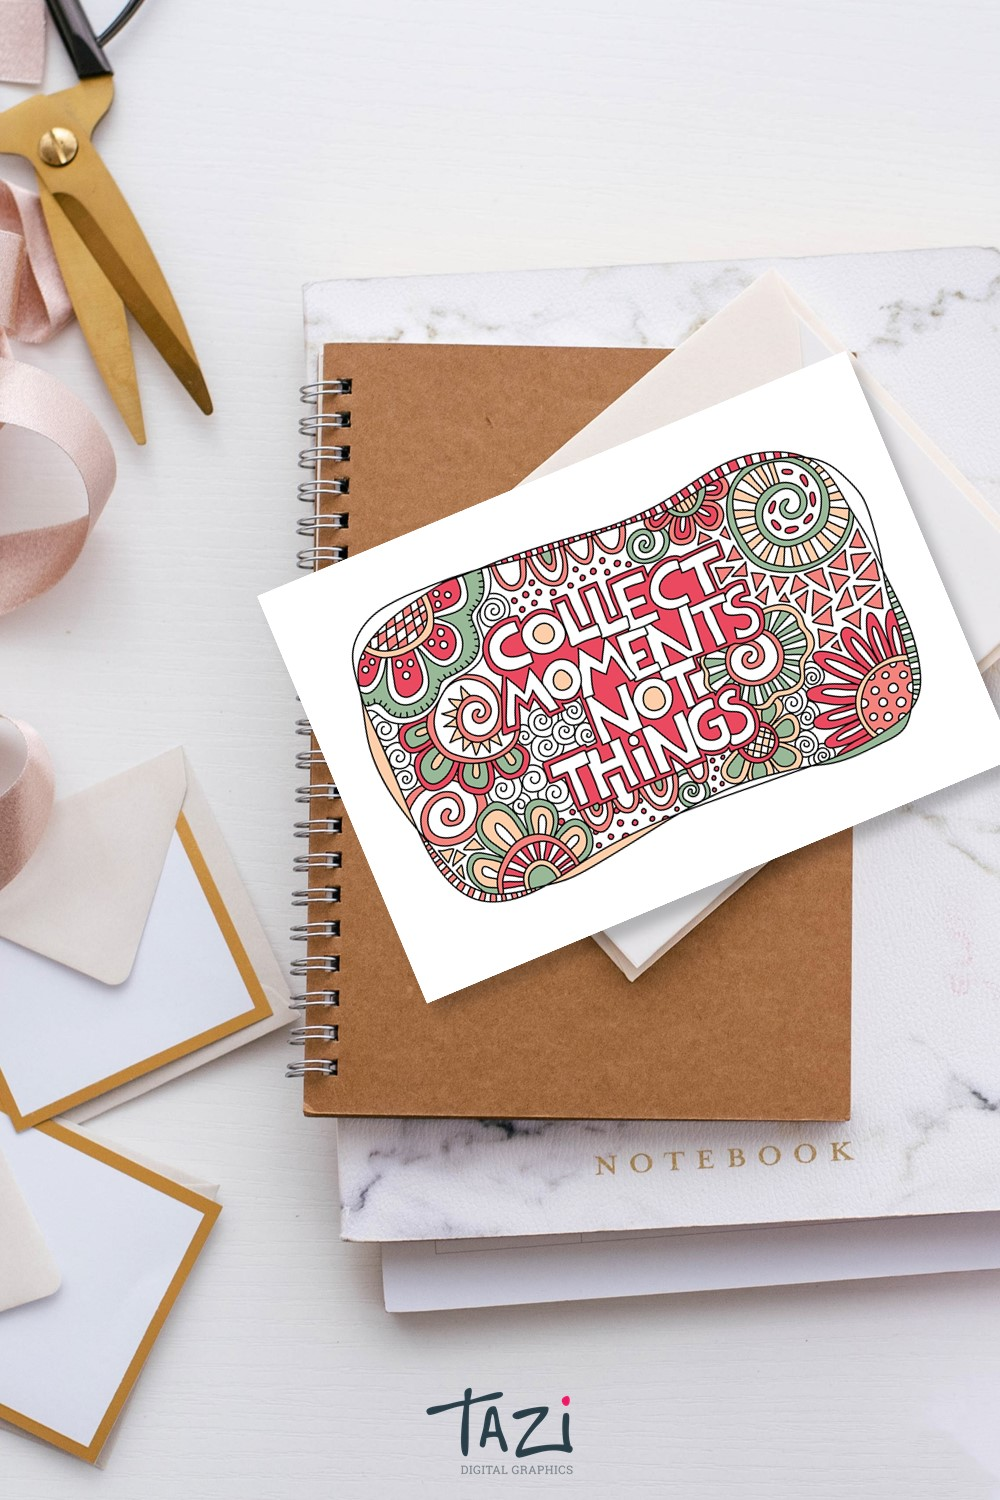 Collect moments not things digital graphic by Tazi